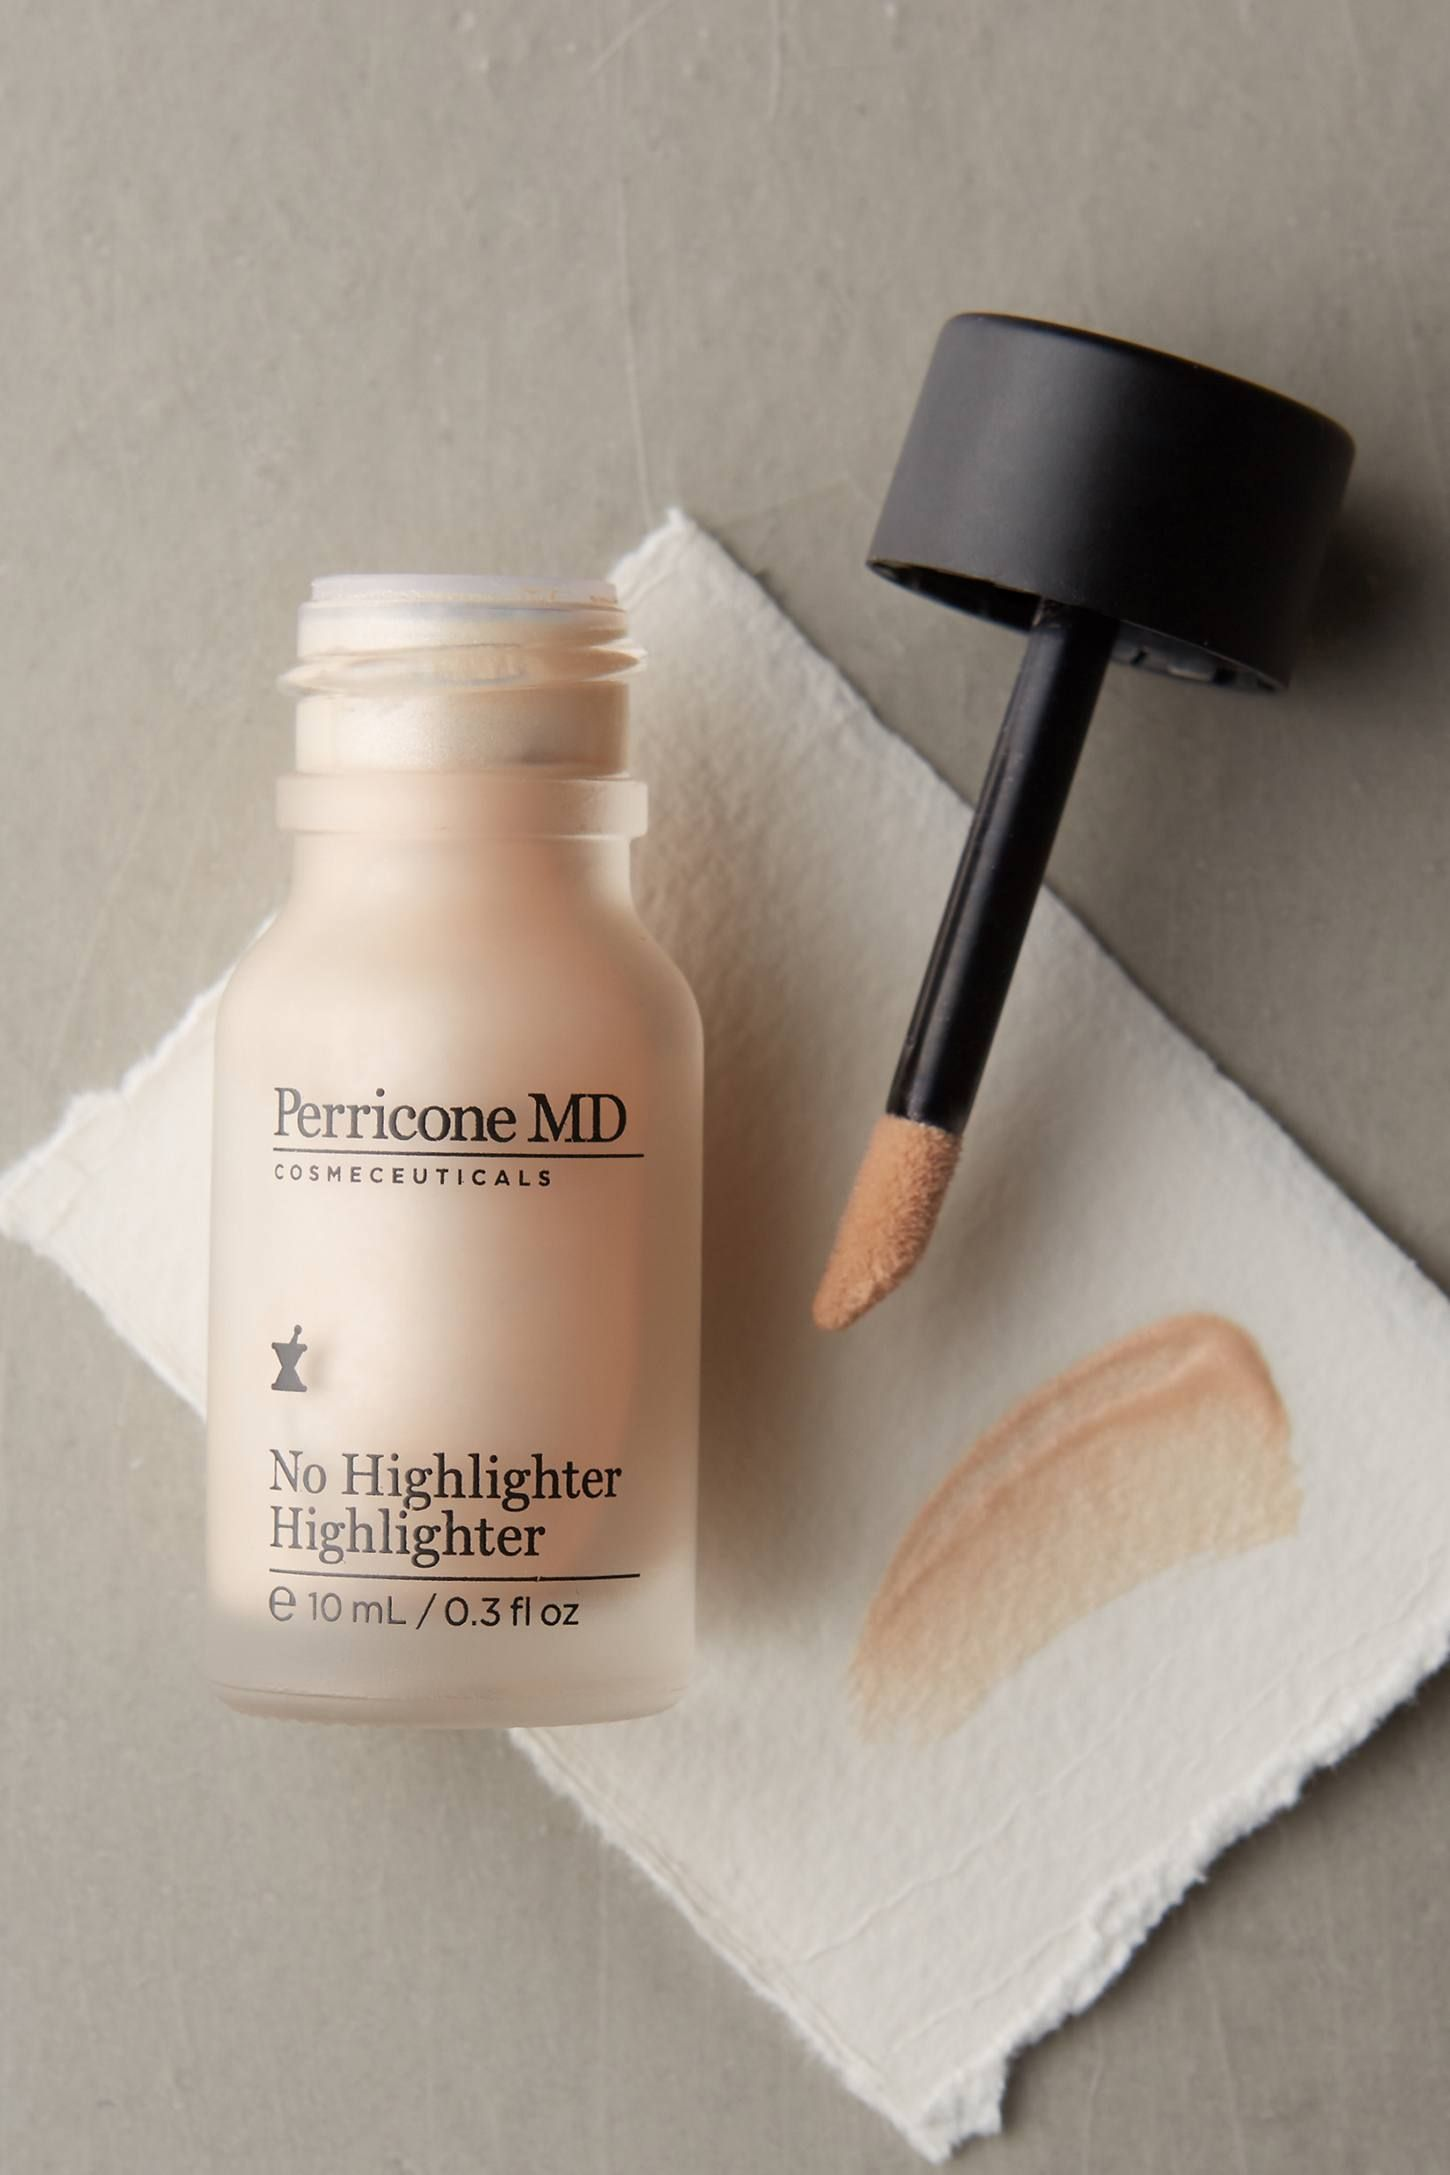 Perricone MD No Highlighter Highlighter Perricone md